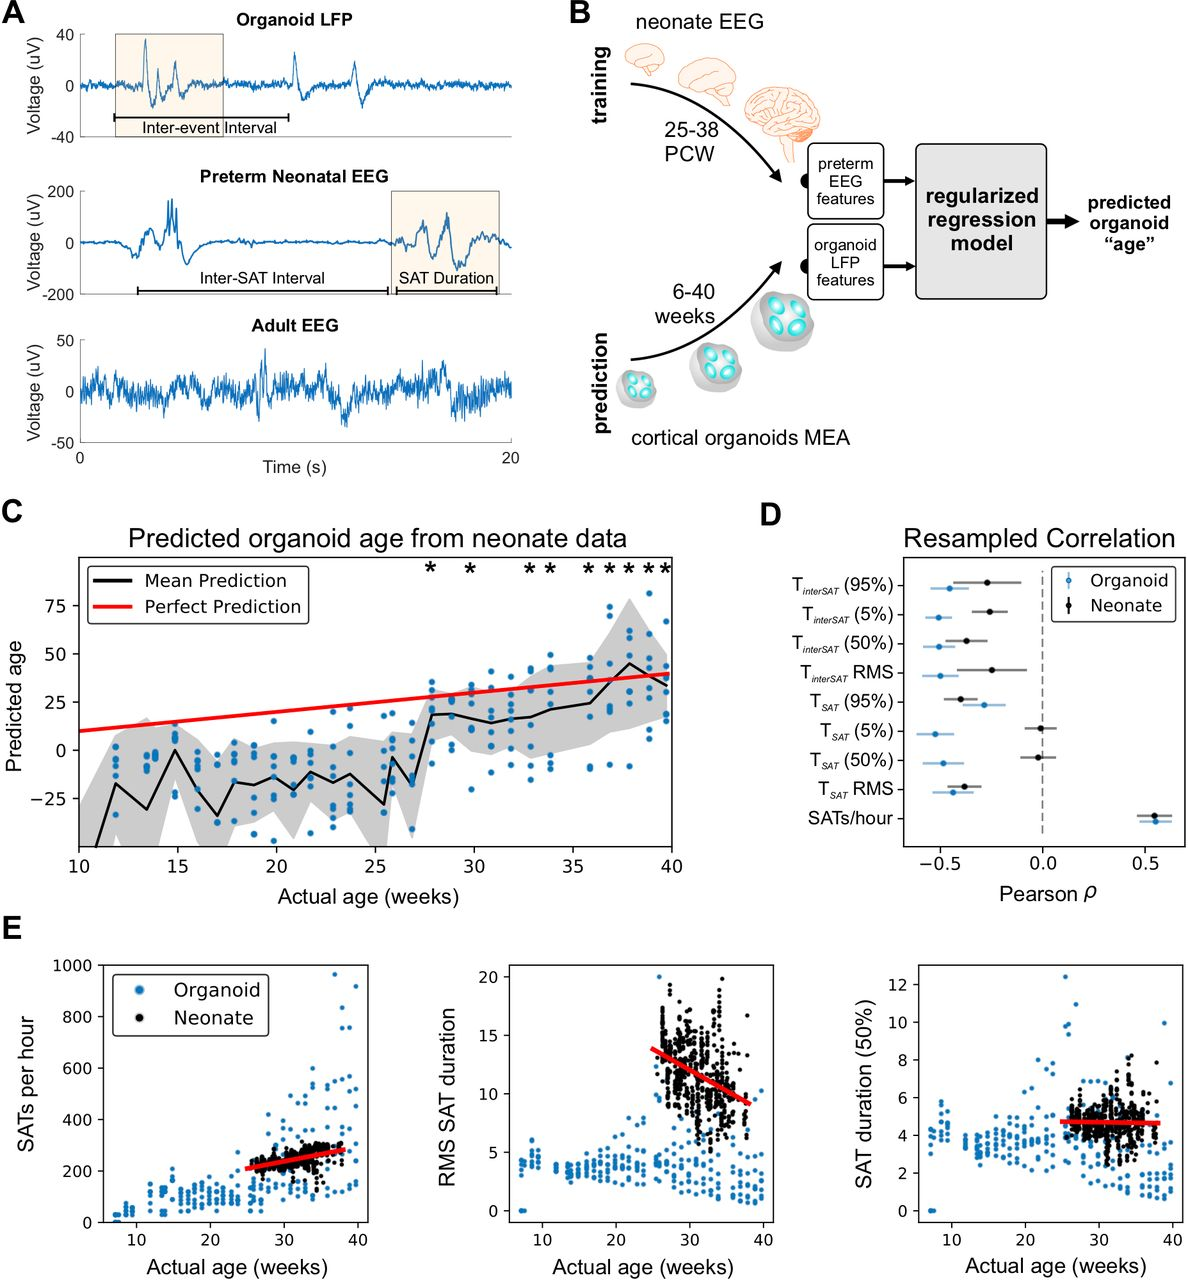 Nested oscillatory dynamics in cortical organoids model